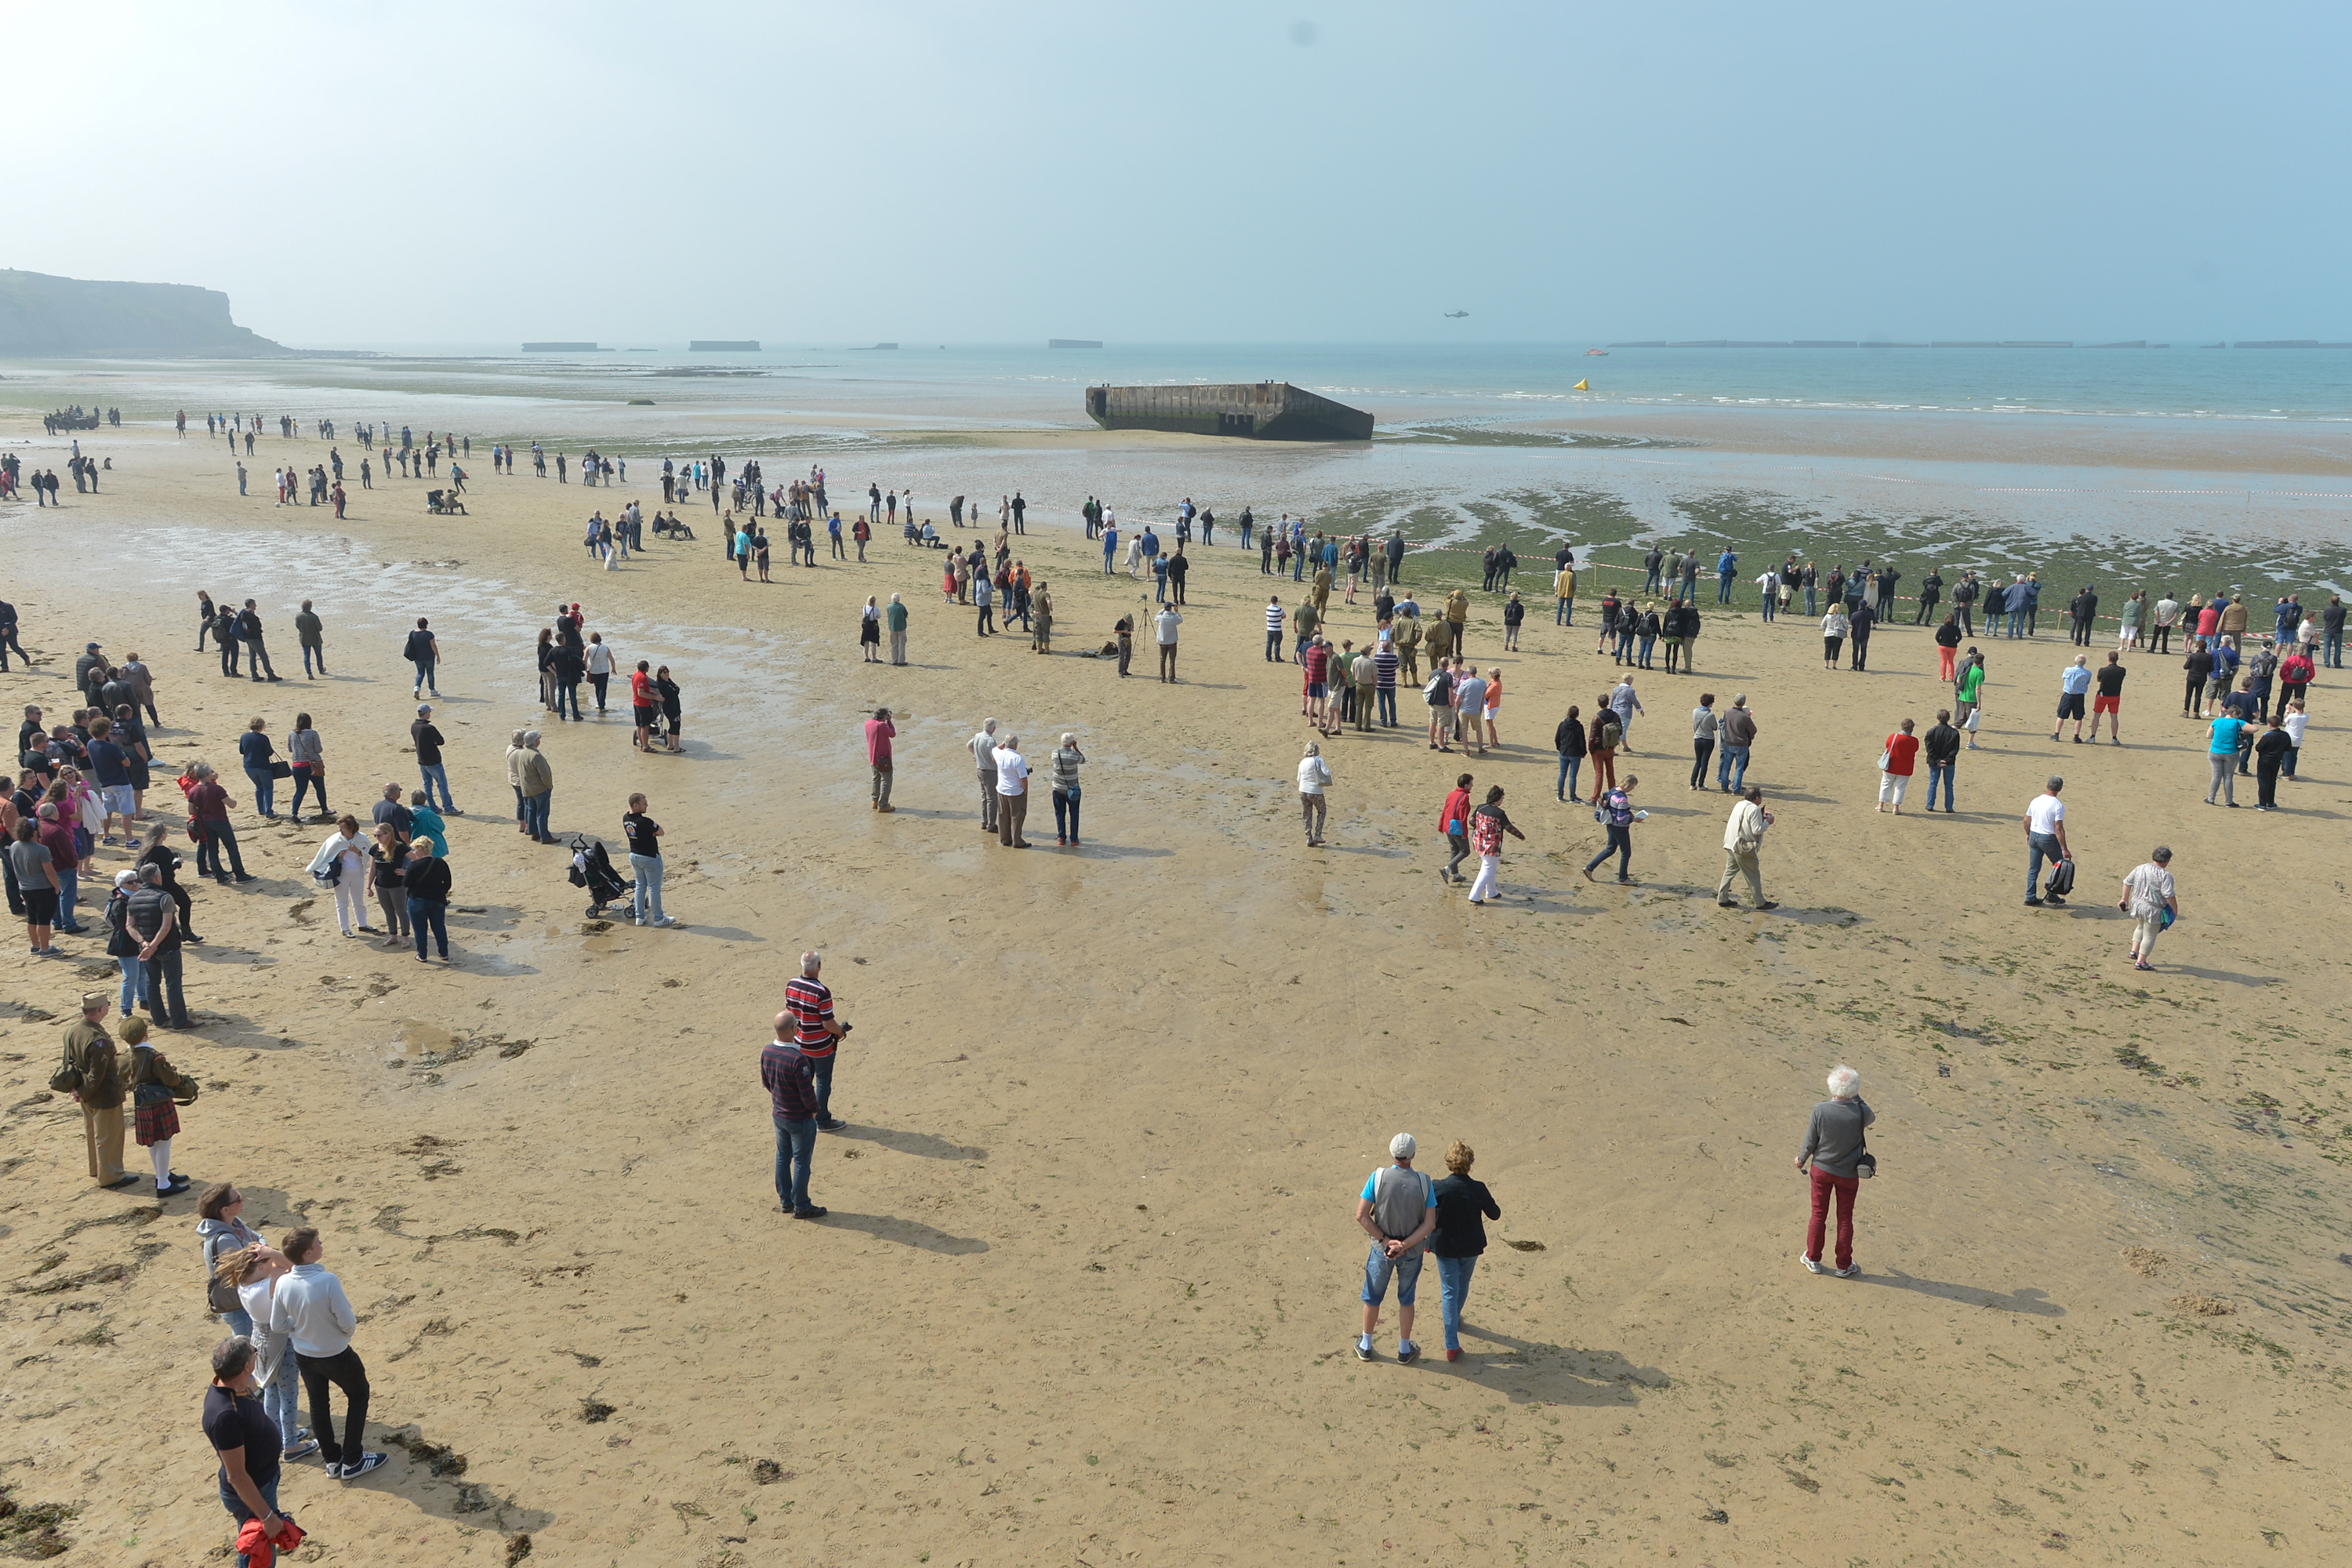 Thousands of spectators travelled to Arromanches to watch the Airshow and the Rescue demonstration, on the 72th Anniversary of D-Day in Arromanches, France on June 6, 2016.